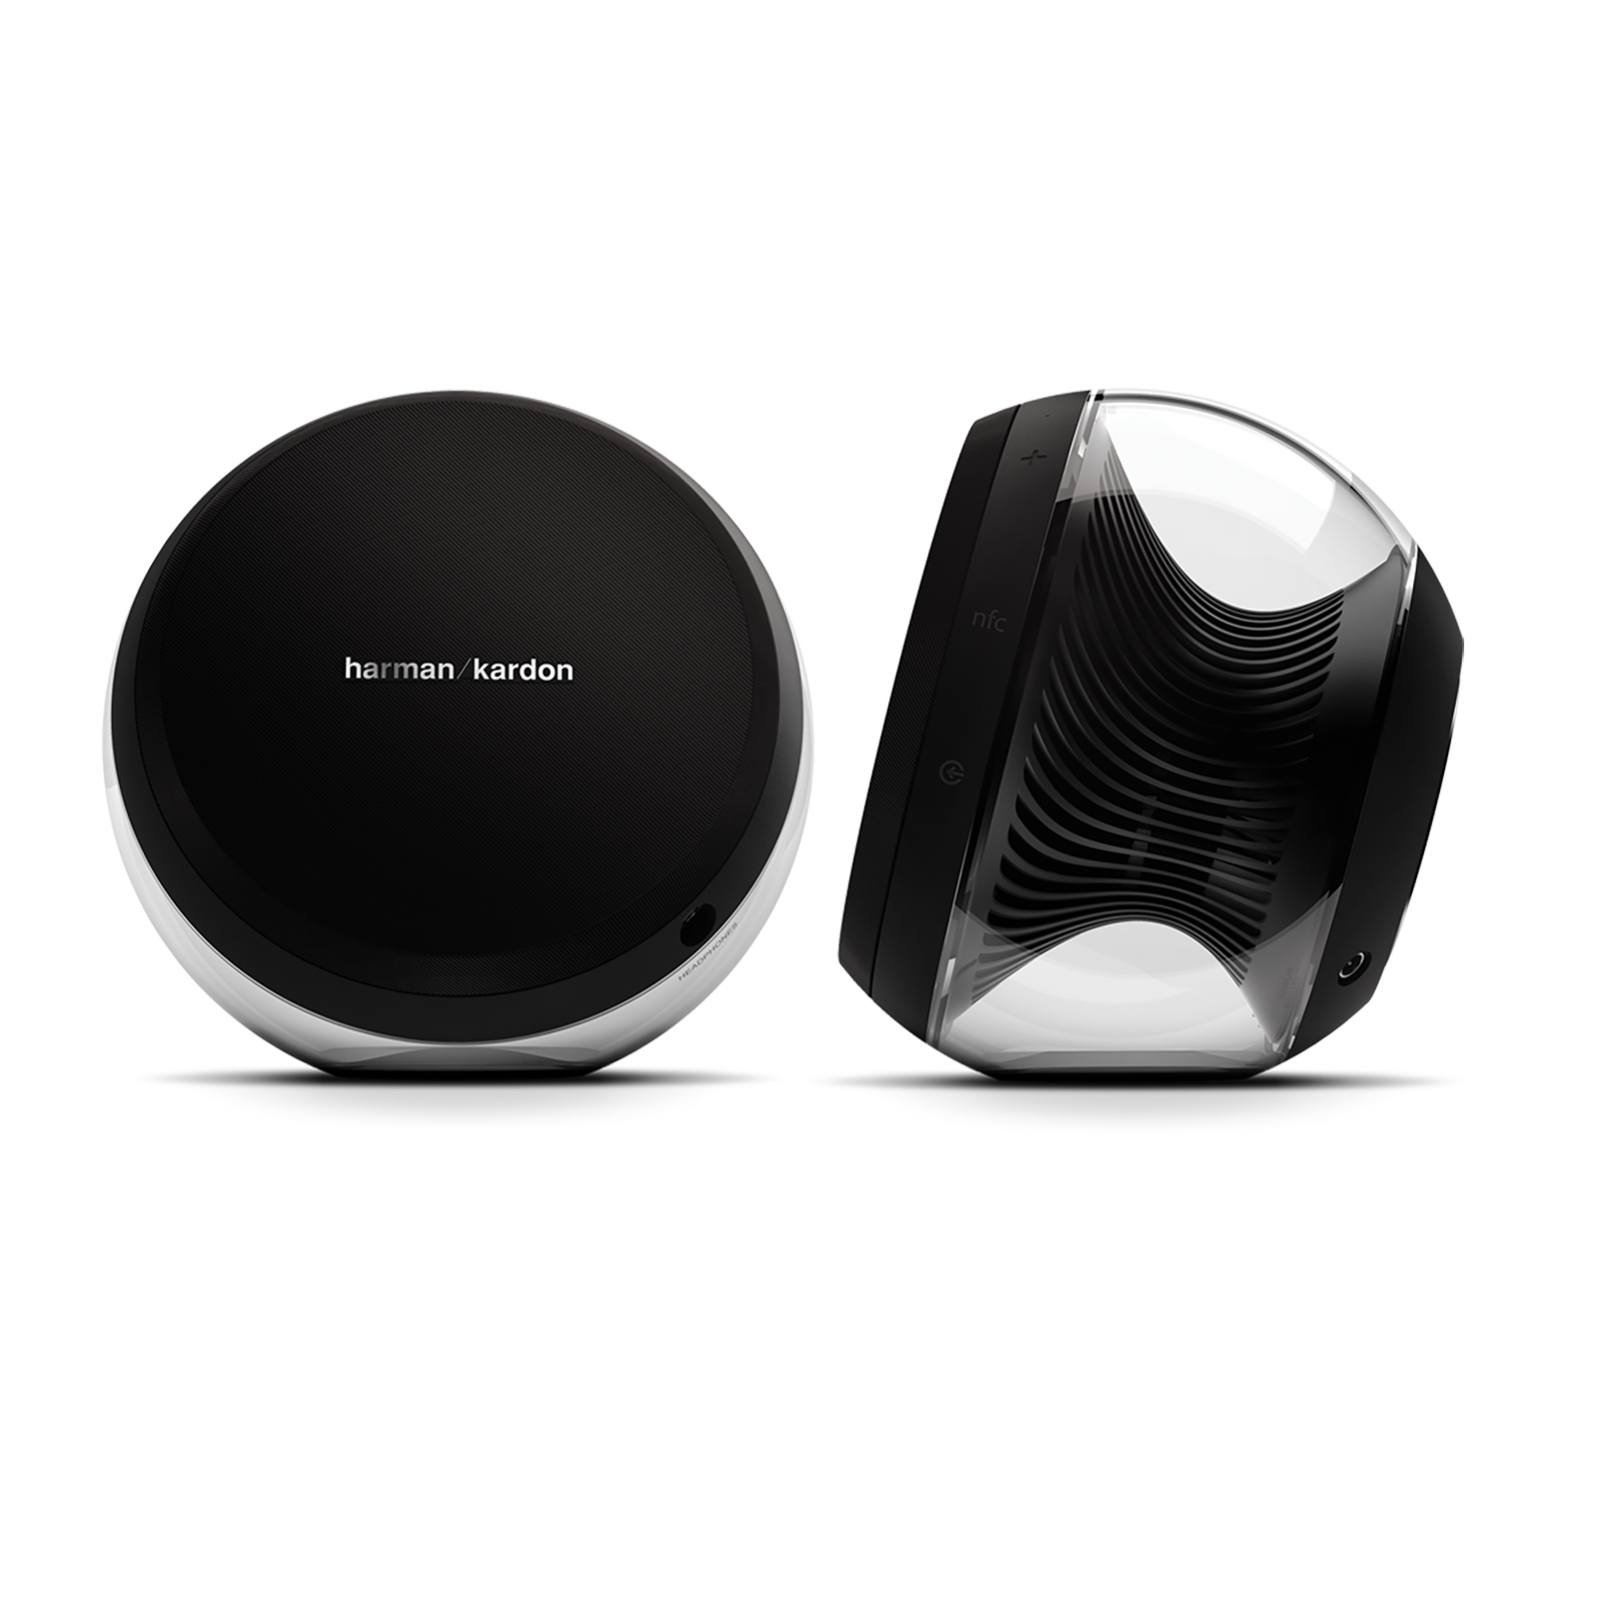 nova wireless stereo speaker system. Black Bedroom Furniture Sets. Home Design Ideas